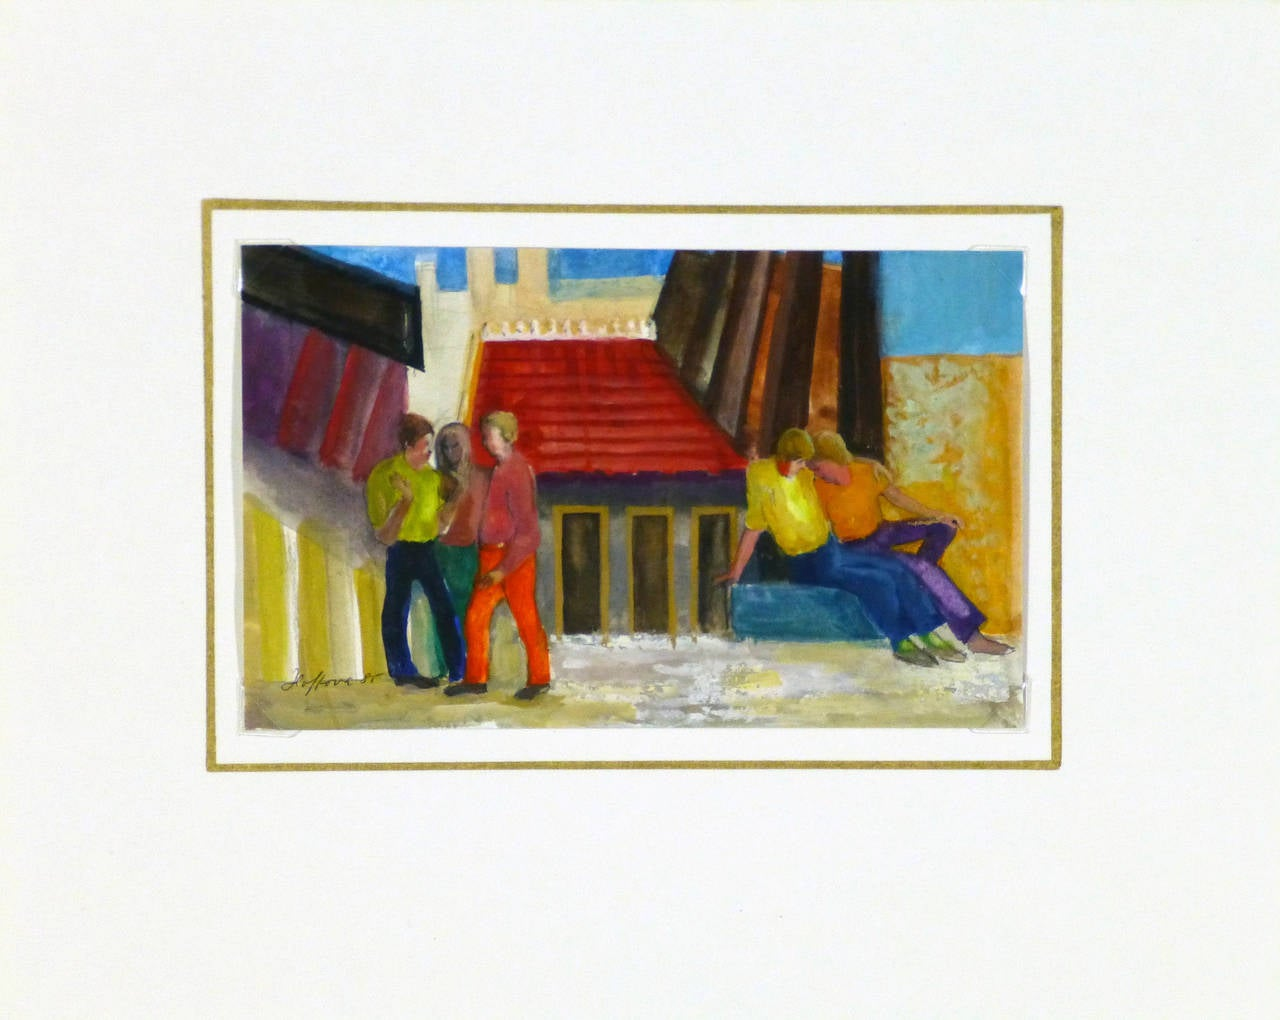 Small acrylic painting of a group of people gathered outside in front of small buildings in bold graphic lines by artist Elisabeth Hoffova, 1985. Signed lower left.  Original one-of-a-kind artwork on paper displayed on a white mat with a gold